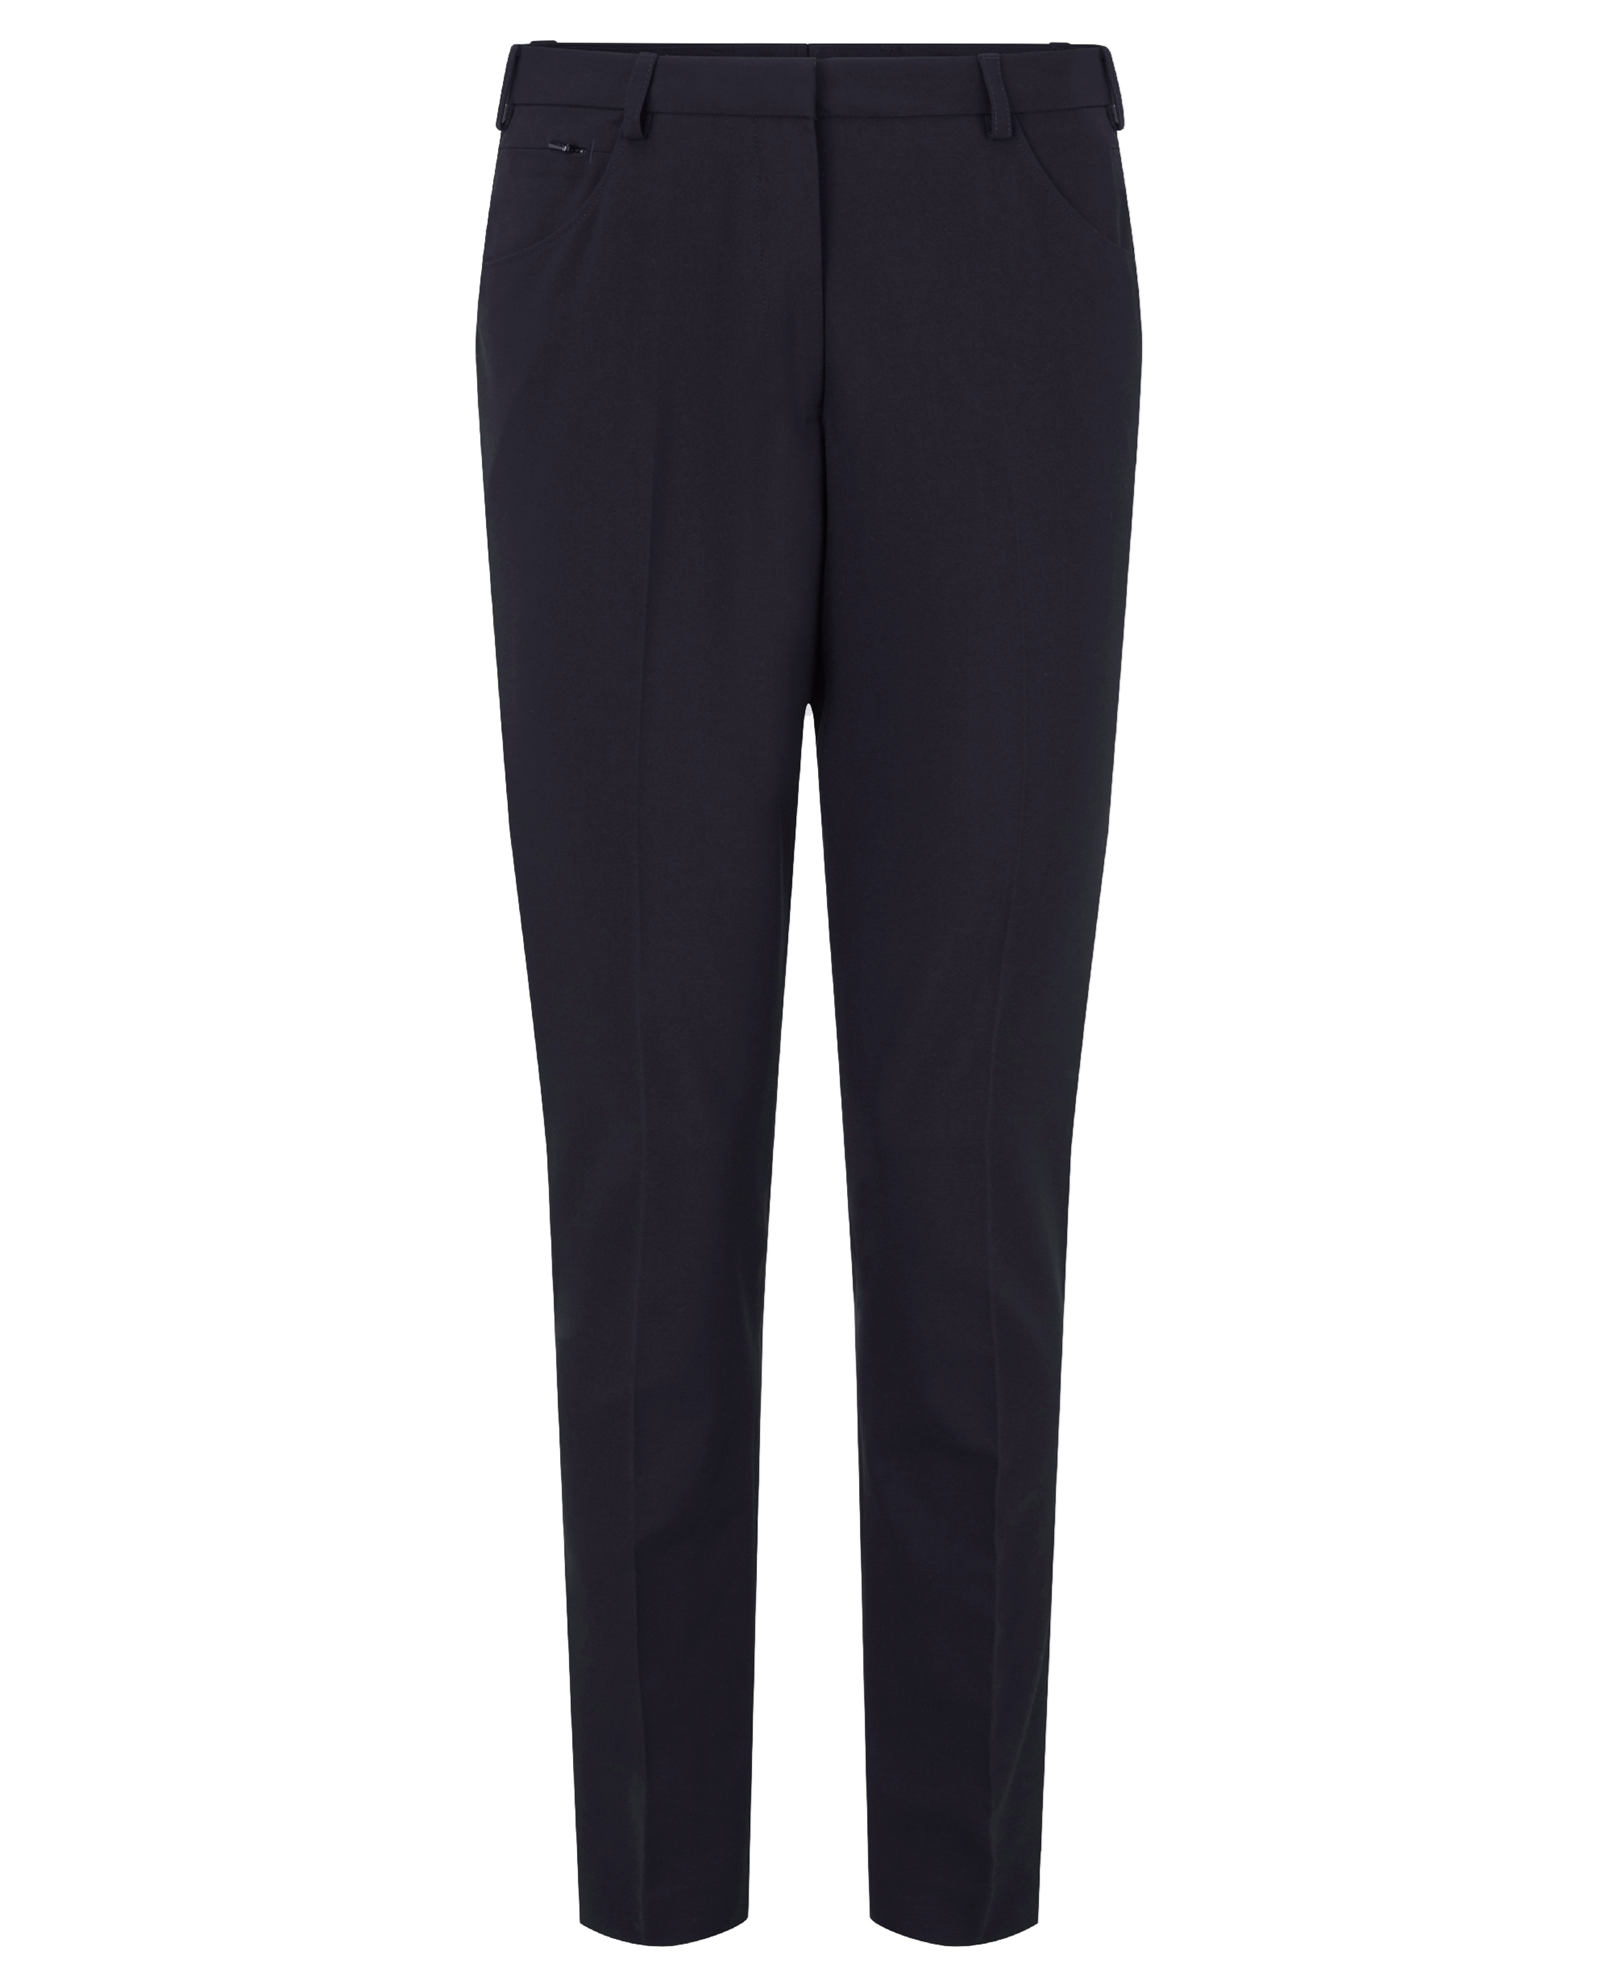 Picture of Chiswick Ladies Slim Fit Trouser - Navy